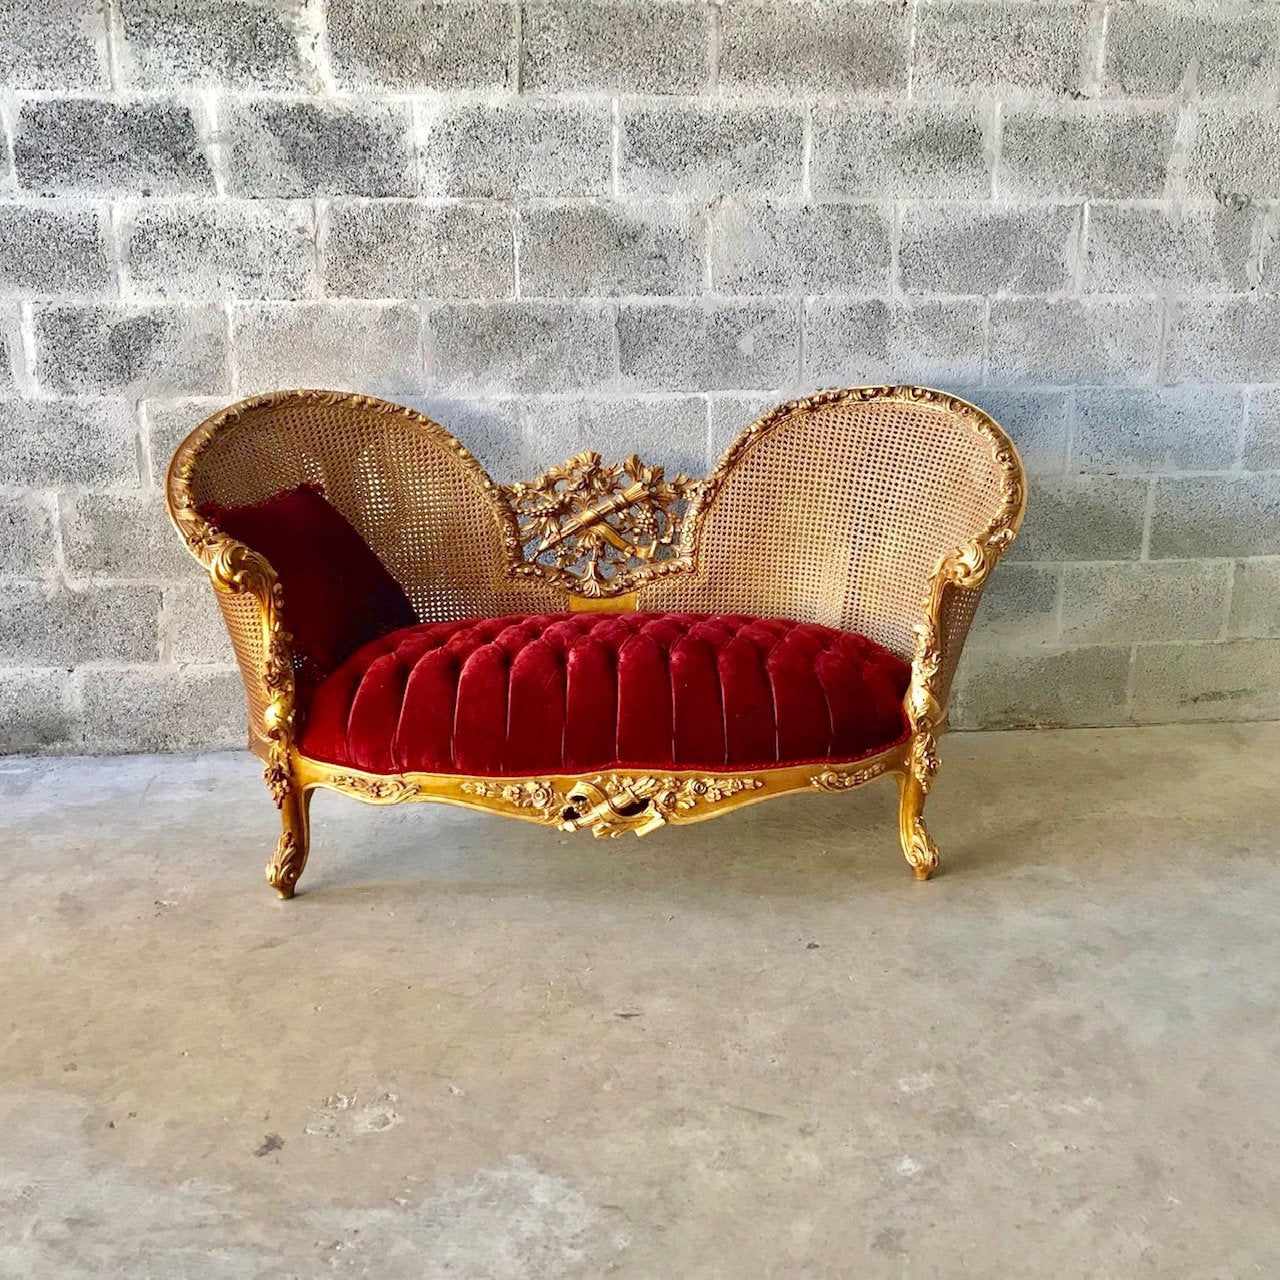 Miraculous French Marquis Vintage Red Sofa Antique Furniture Style French Tufted Chair Refinish Gold Leaf New Padding Tufted Fabric Interior Design Machost Co Dining Chair Design Ideas Machostcouk